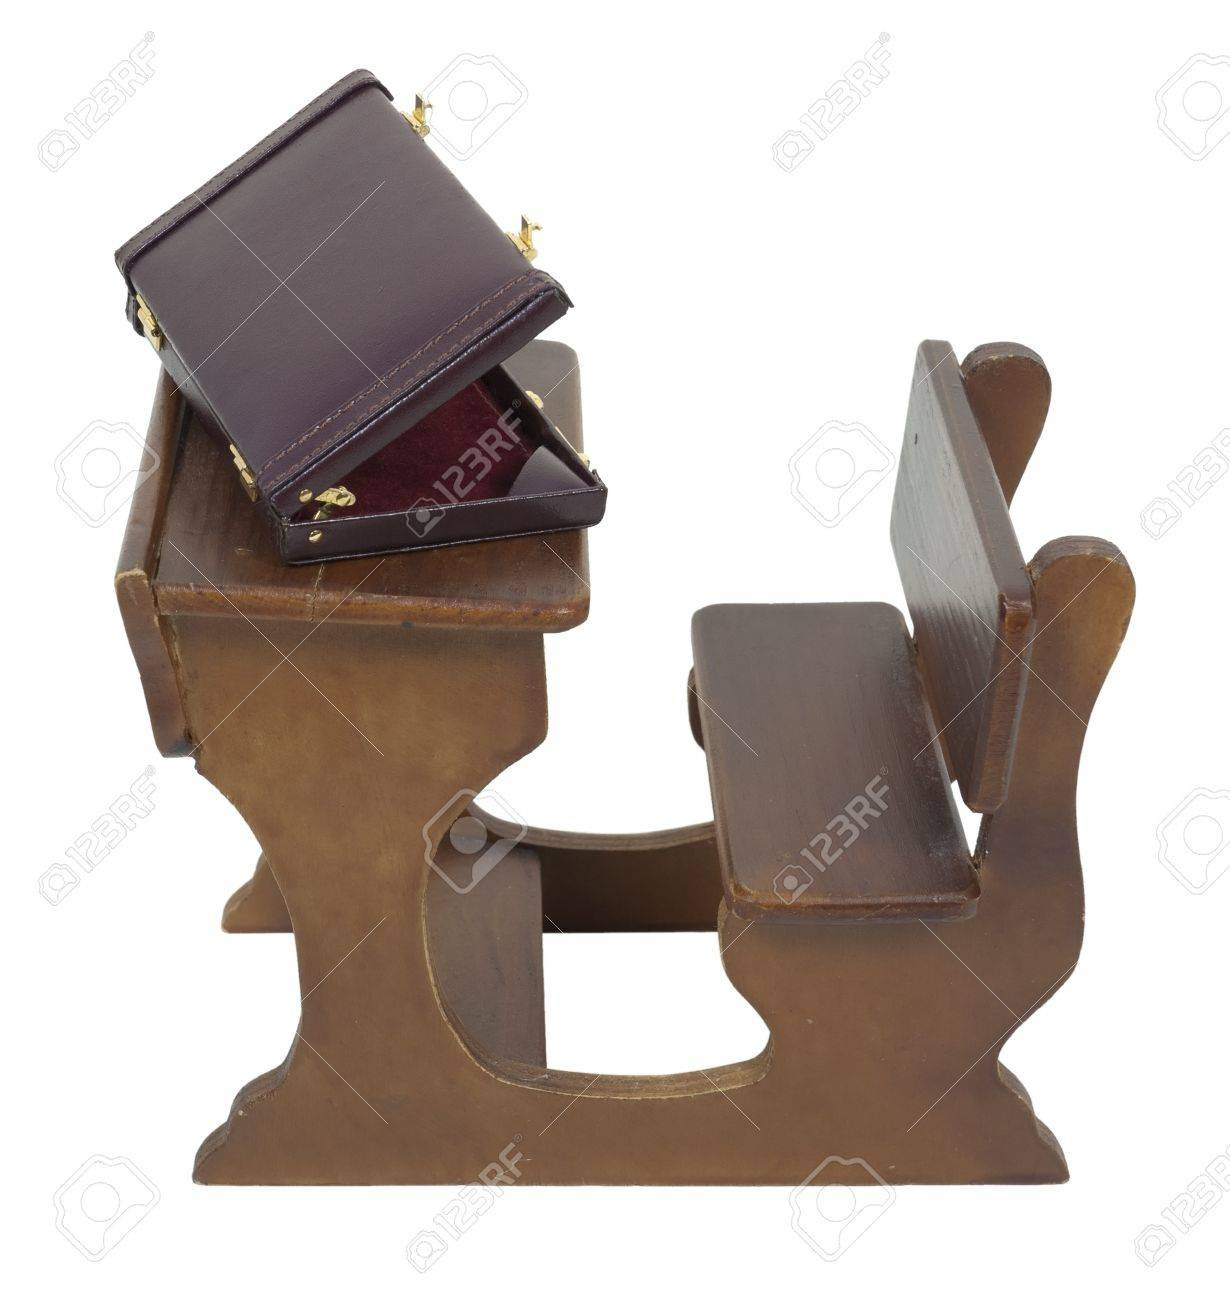 Briefcase On Retro Wooden Student Desk Stock Photo Picture And